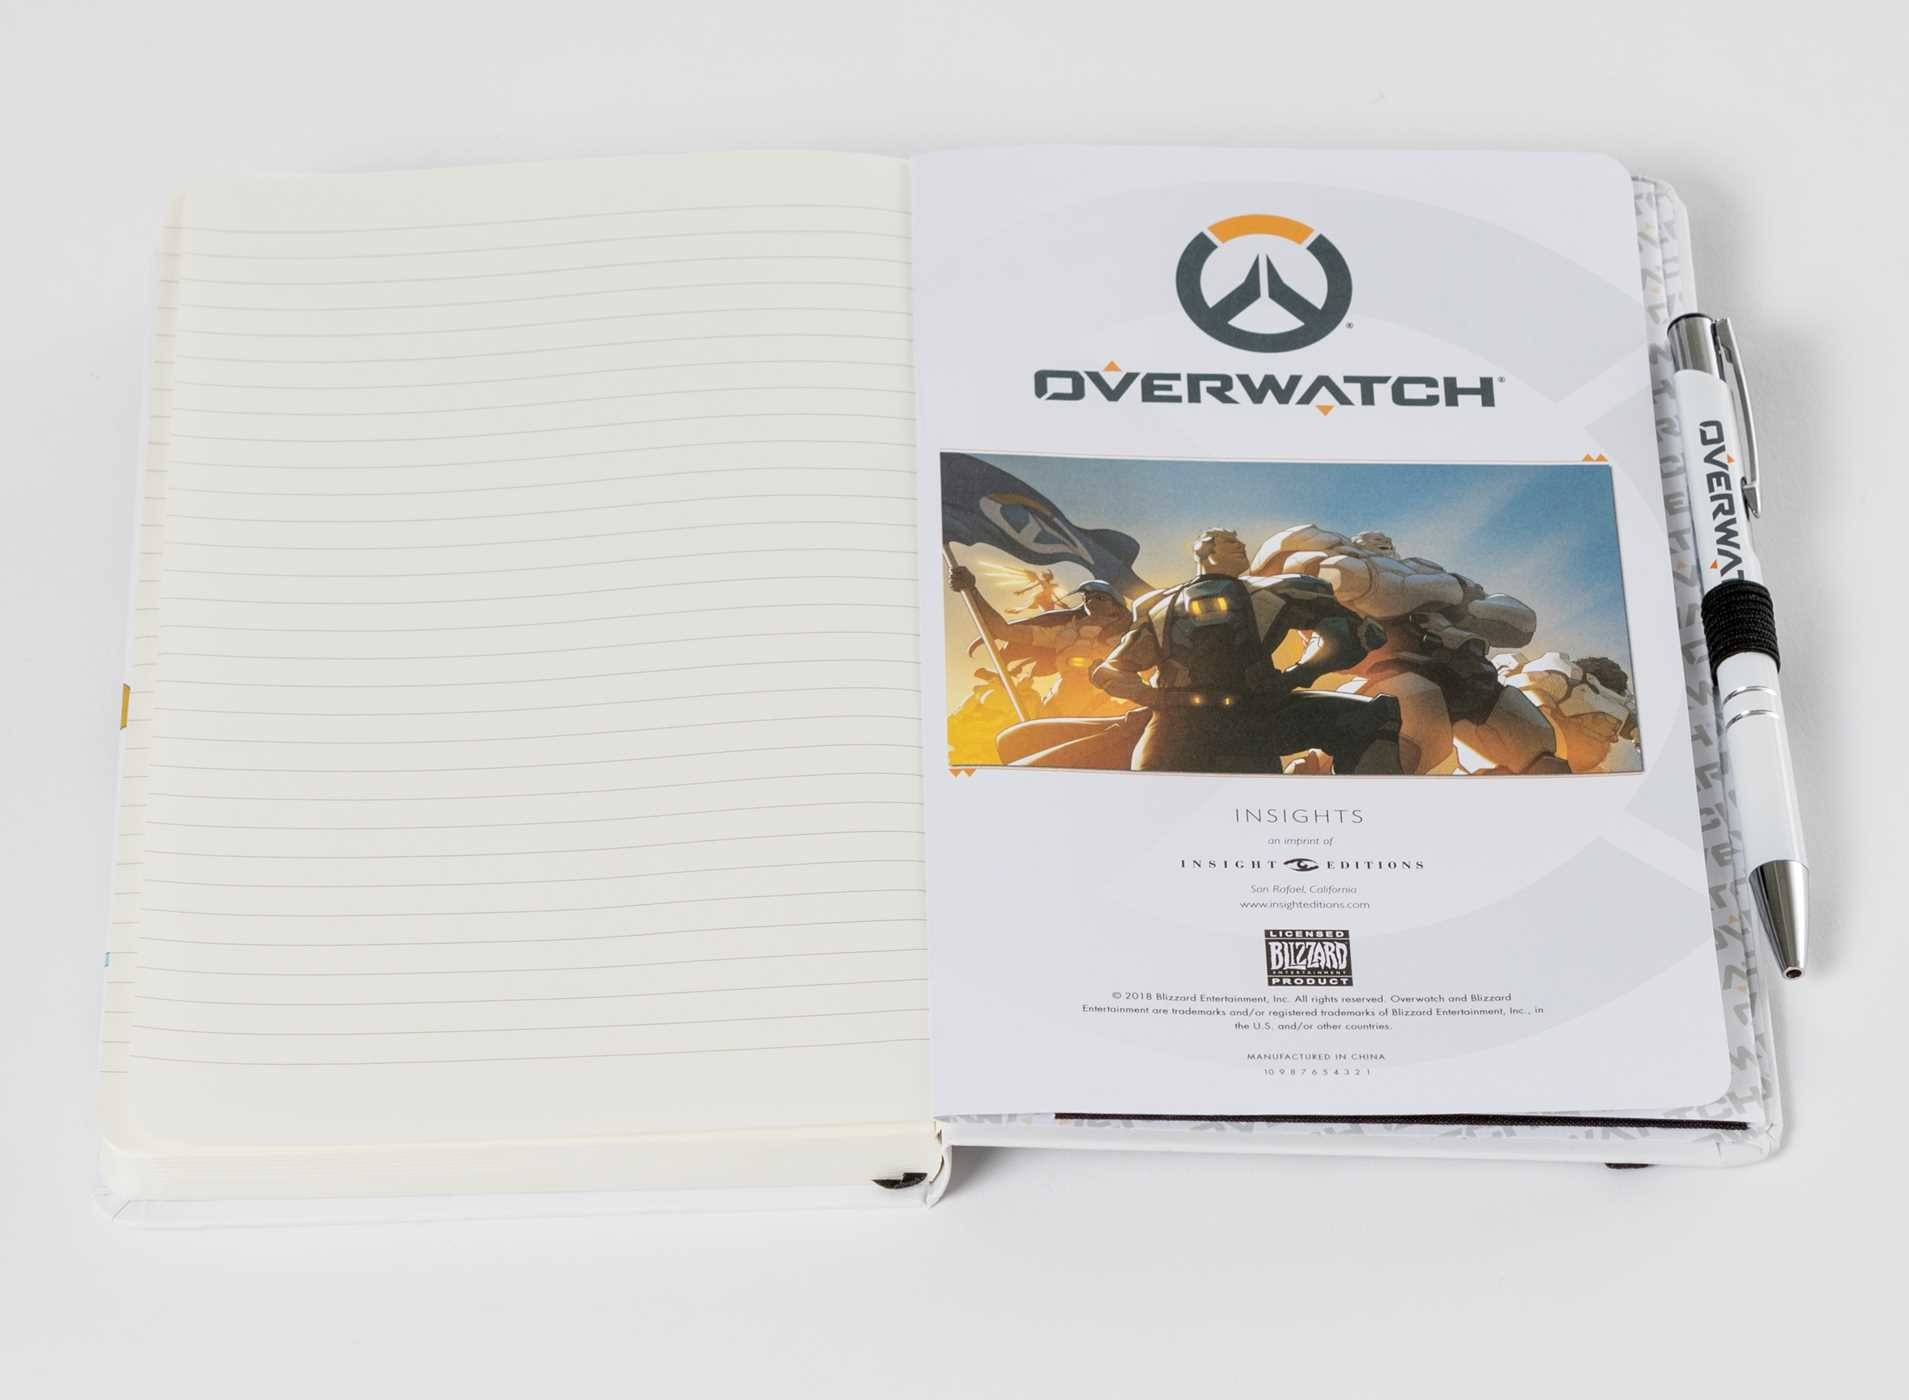 Overwatch hardcover ruled journal with pen 9781683835387.in06